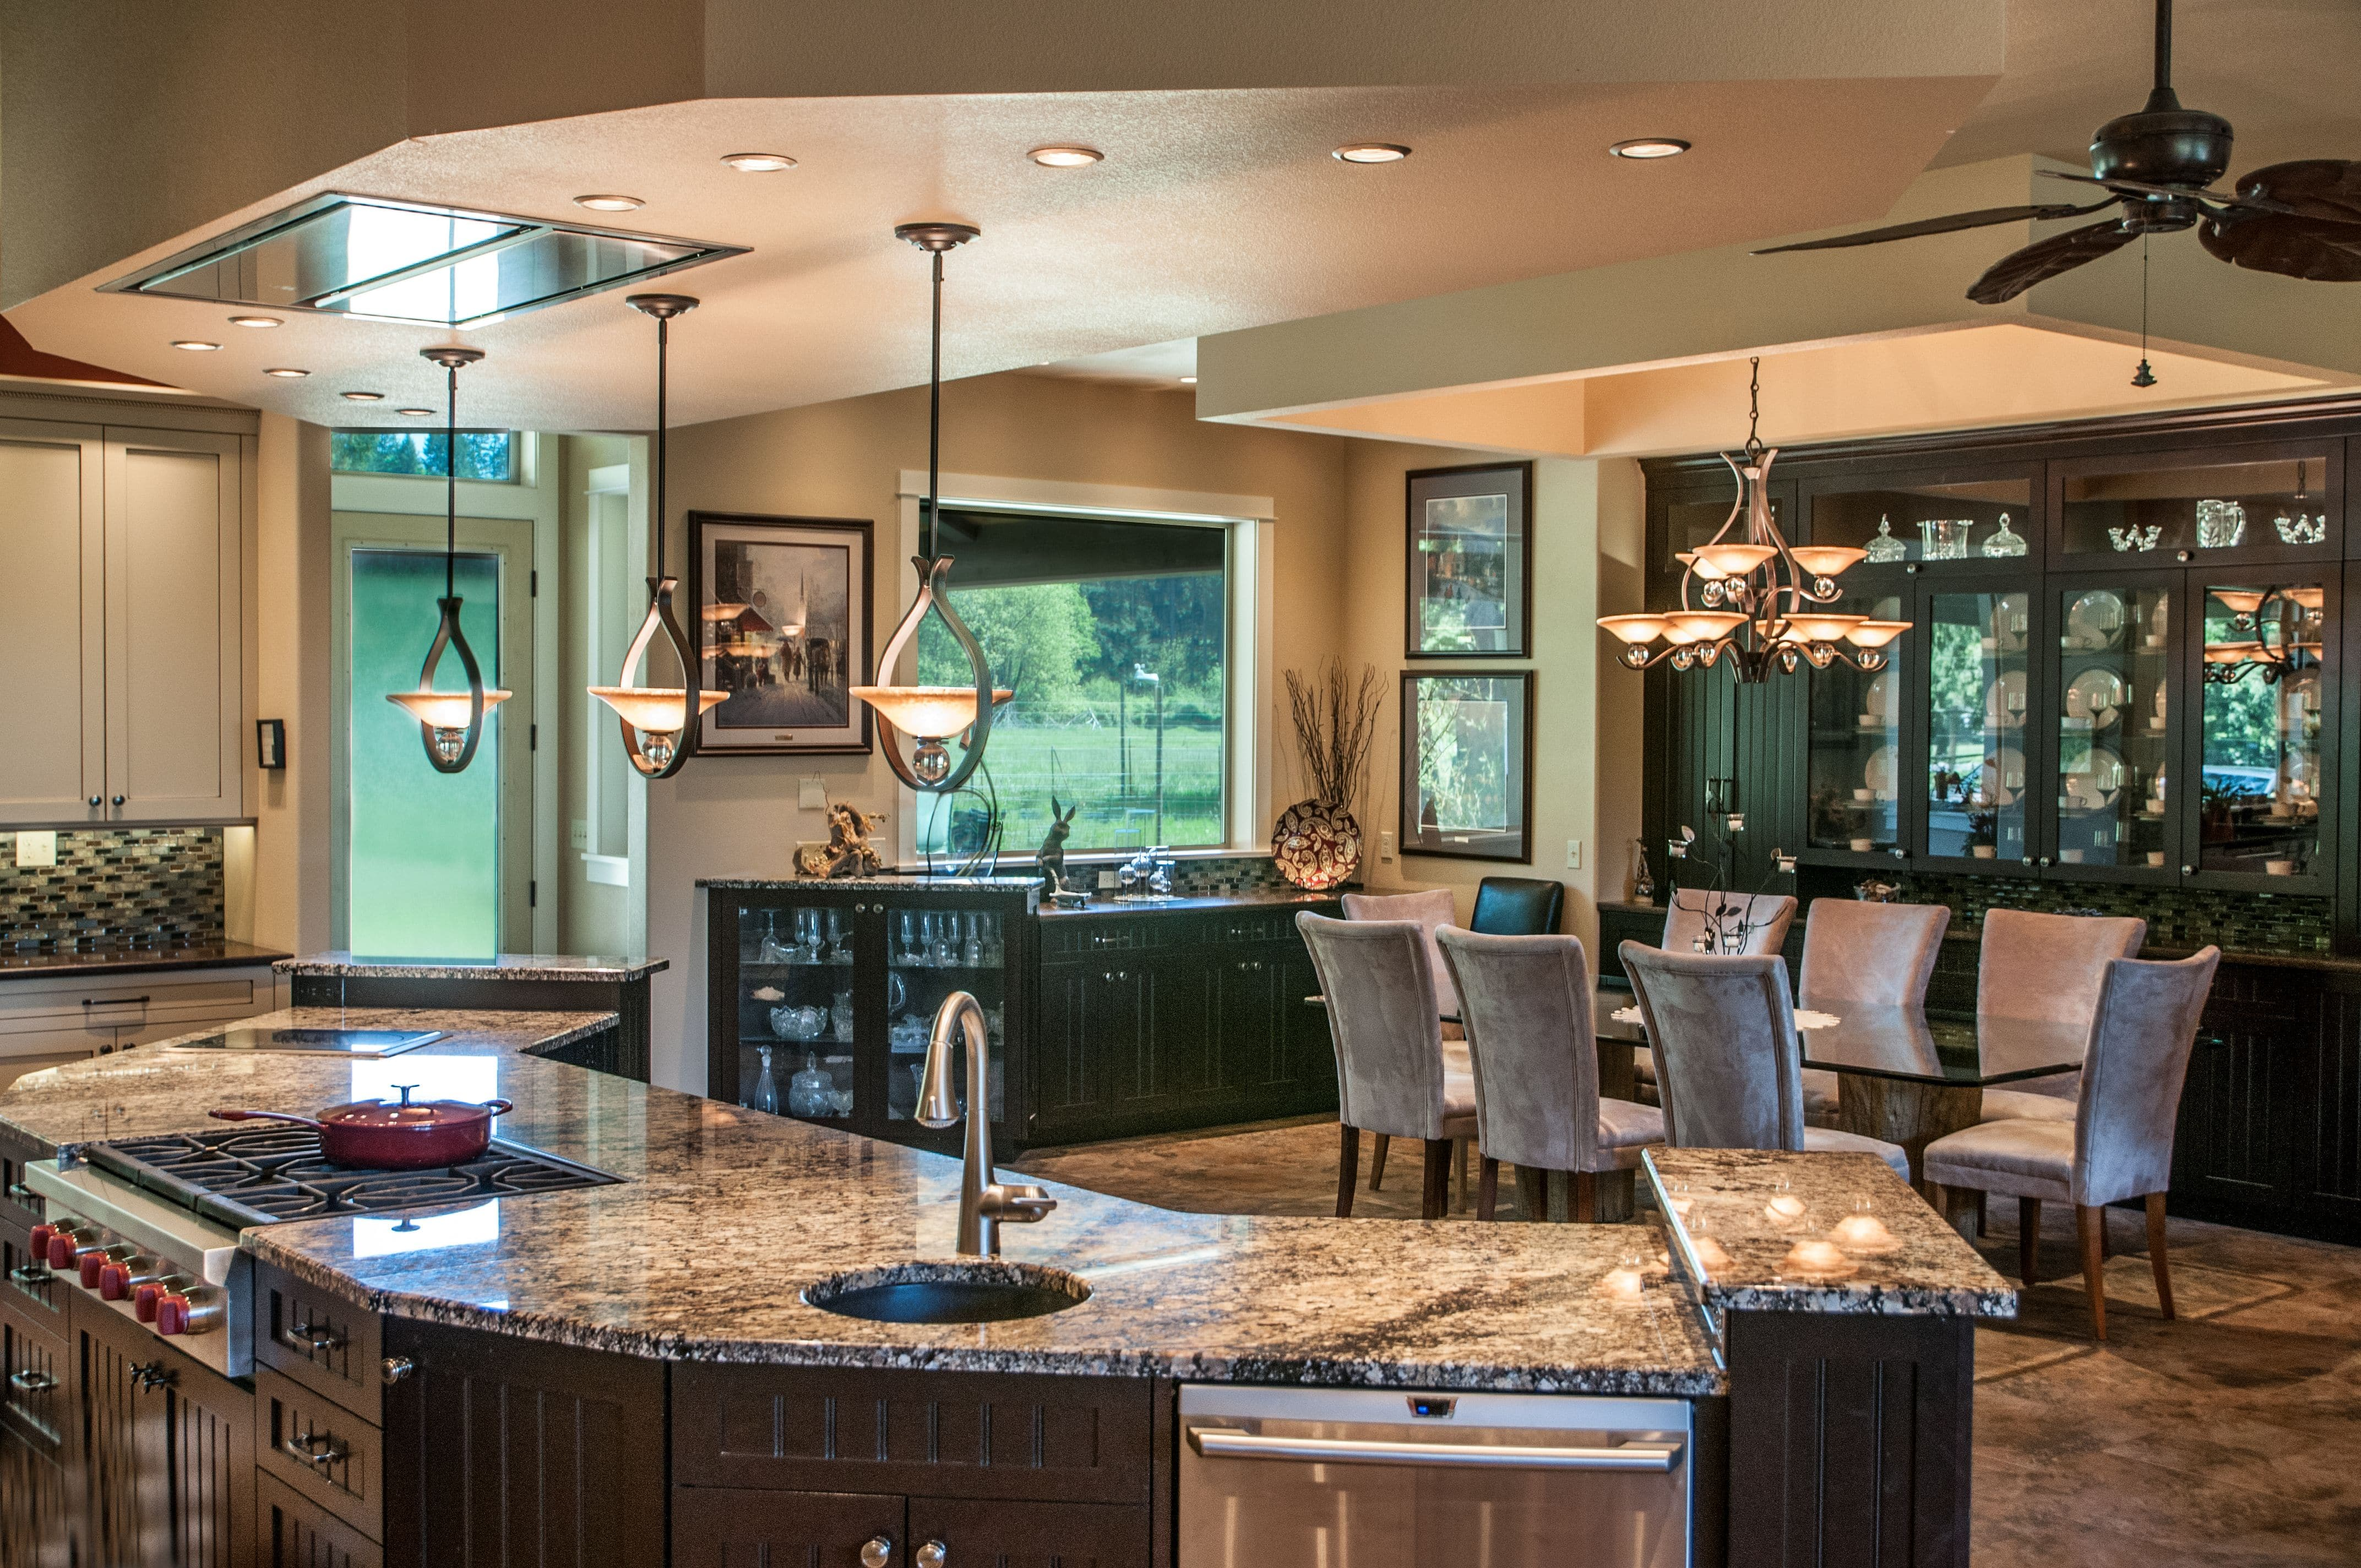 Testimonial about Great Room Kitchen and Dining Room